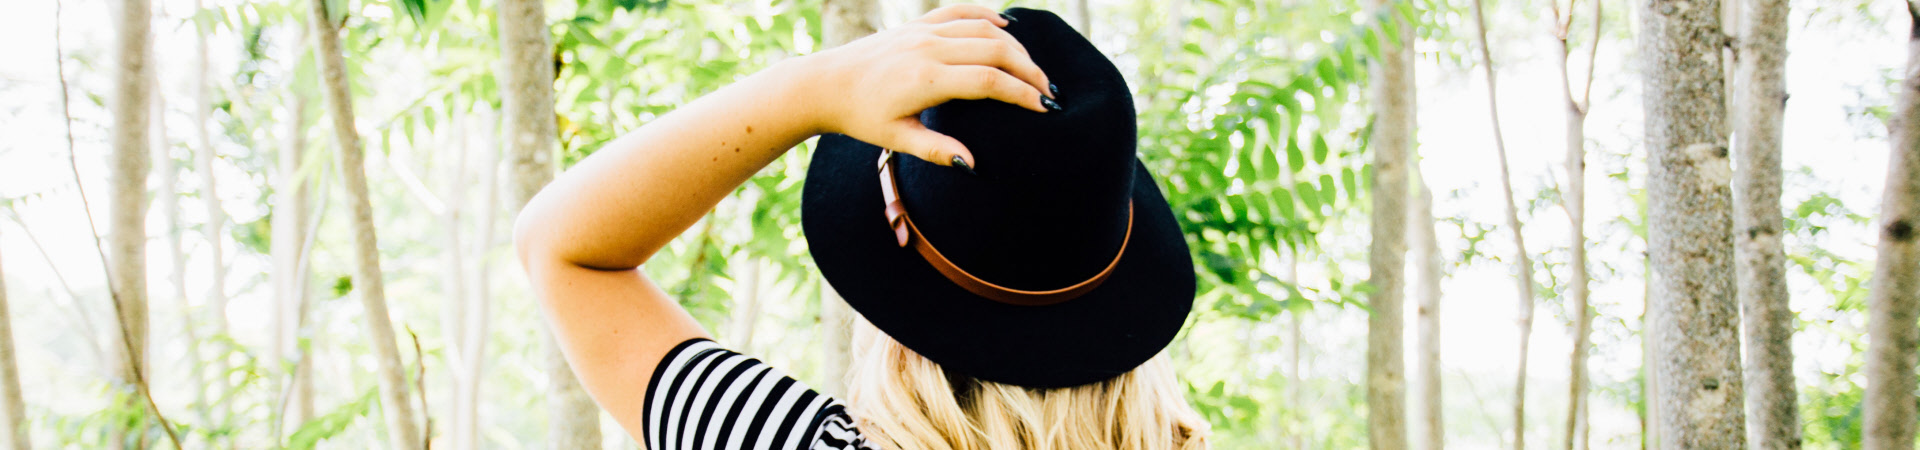 GELCRYLIC ODORLESS GEL POWDER SYSTEM